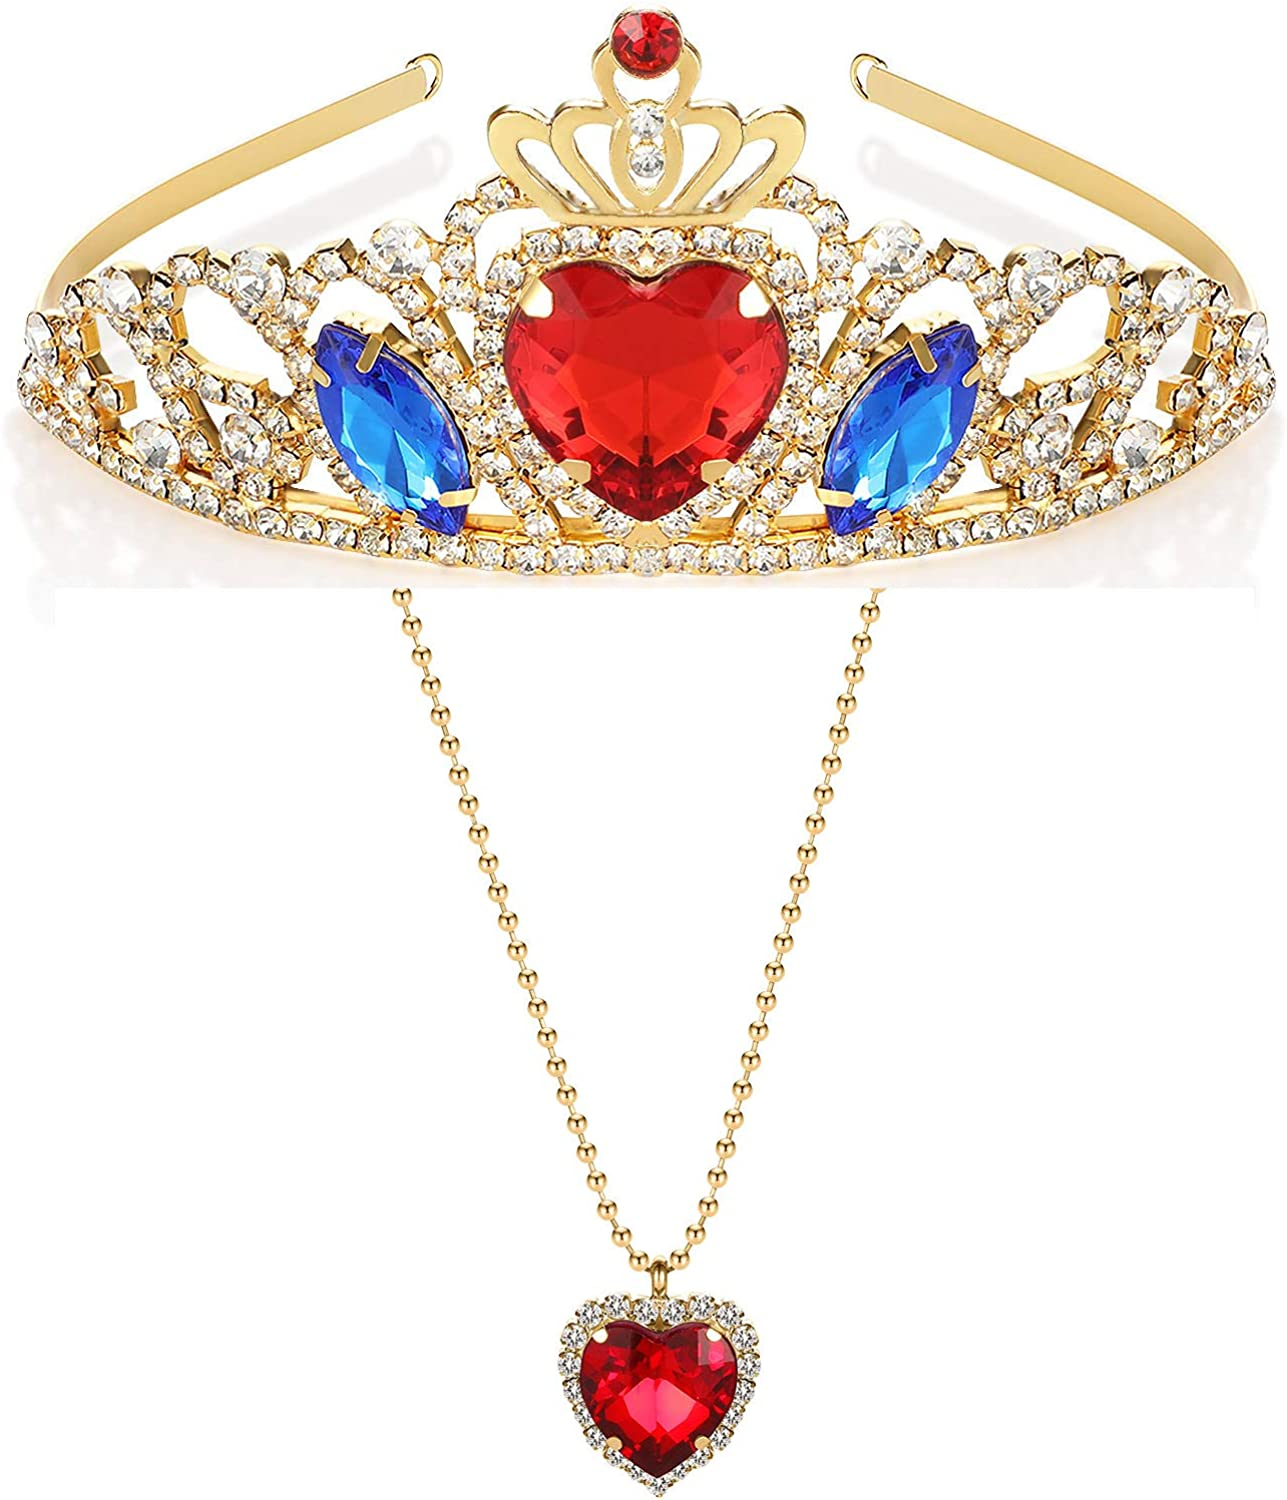 Evie Descendants 3 Crown and Necklace Red Heart Gold Tiara Queen of Evie Hearts Necklace Jewelry Set for Evie Birthday Outfit